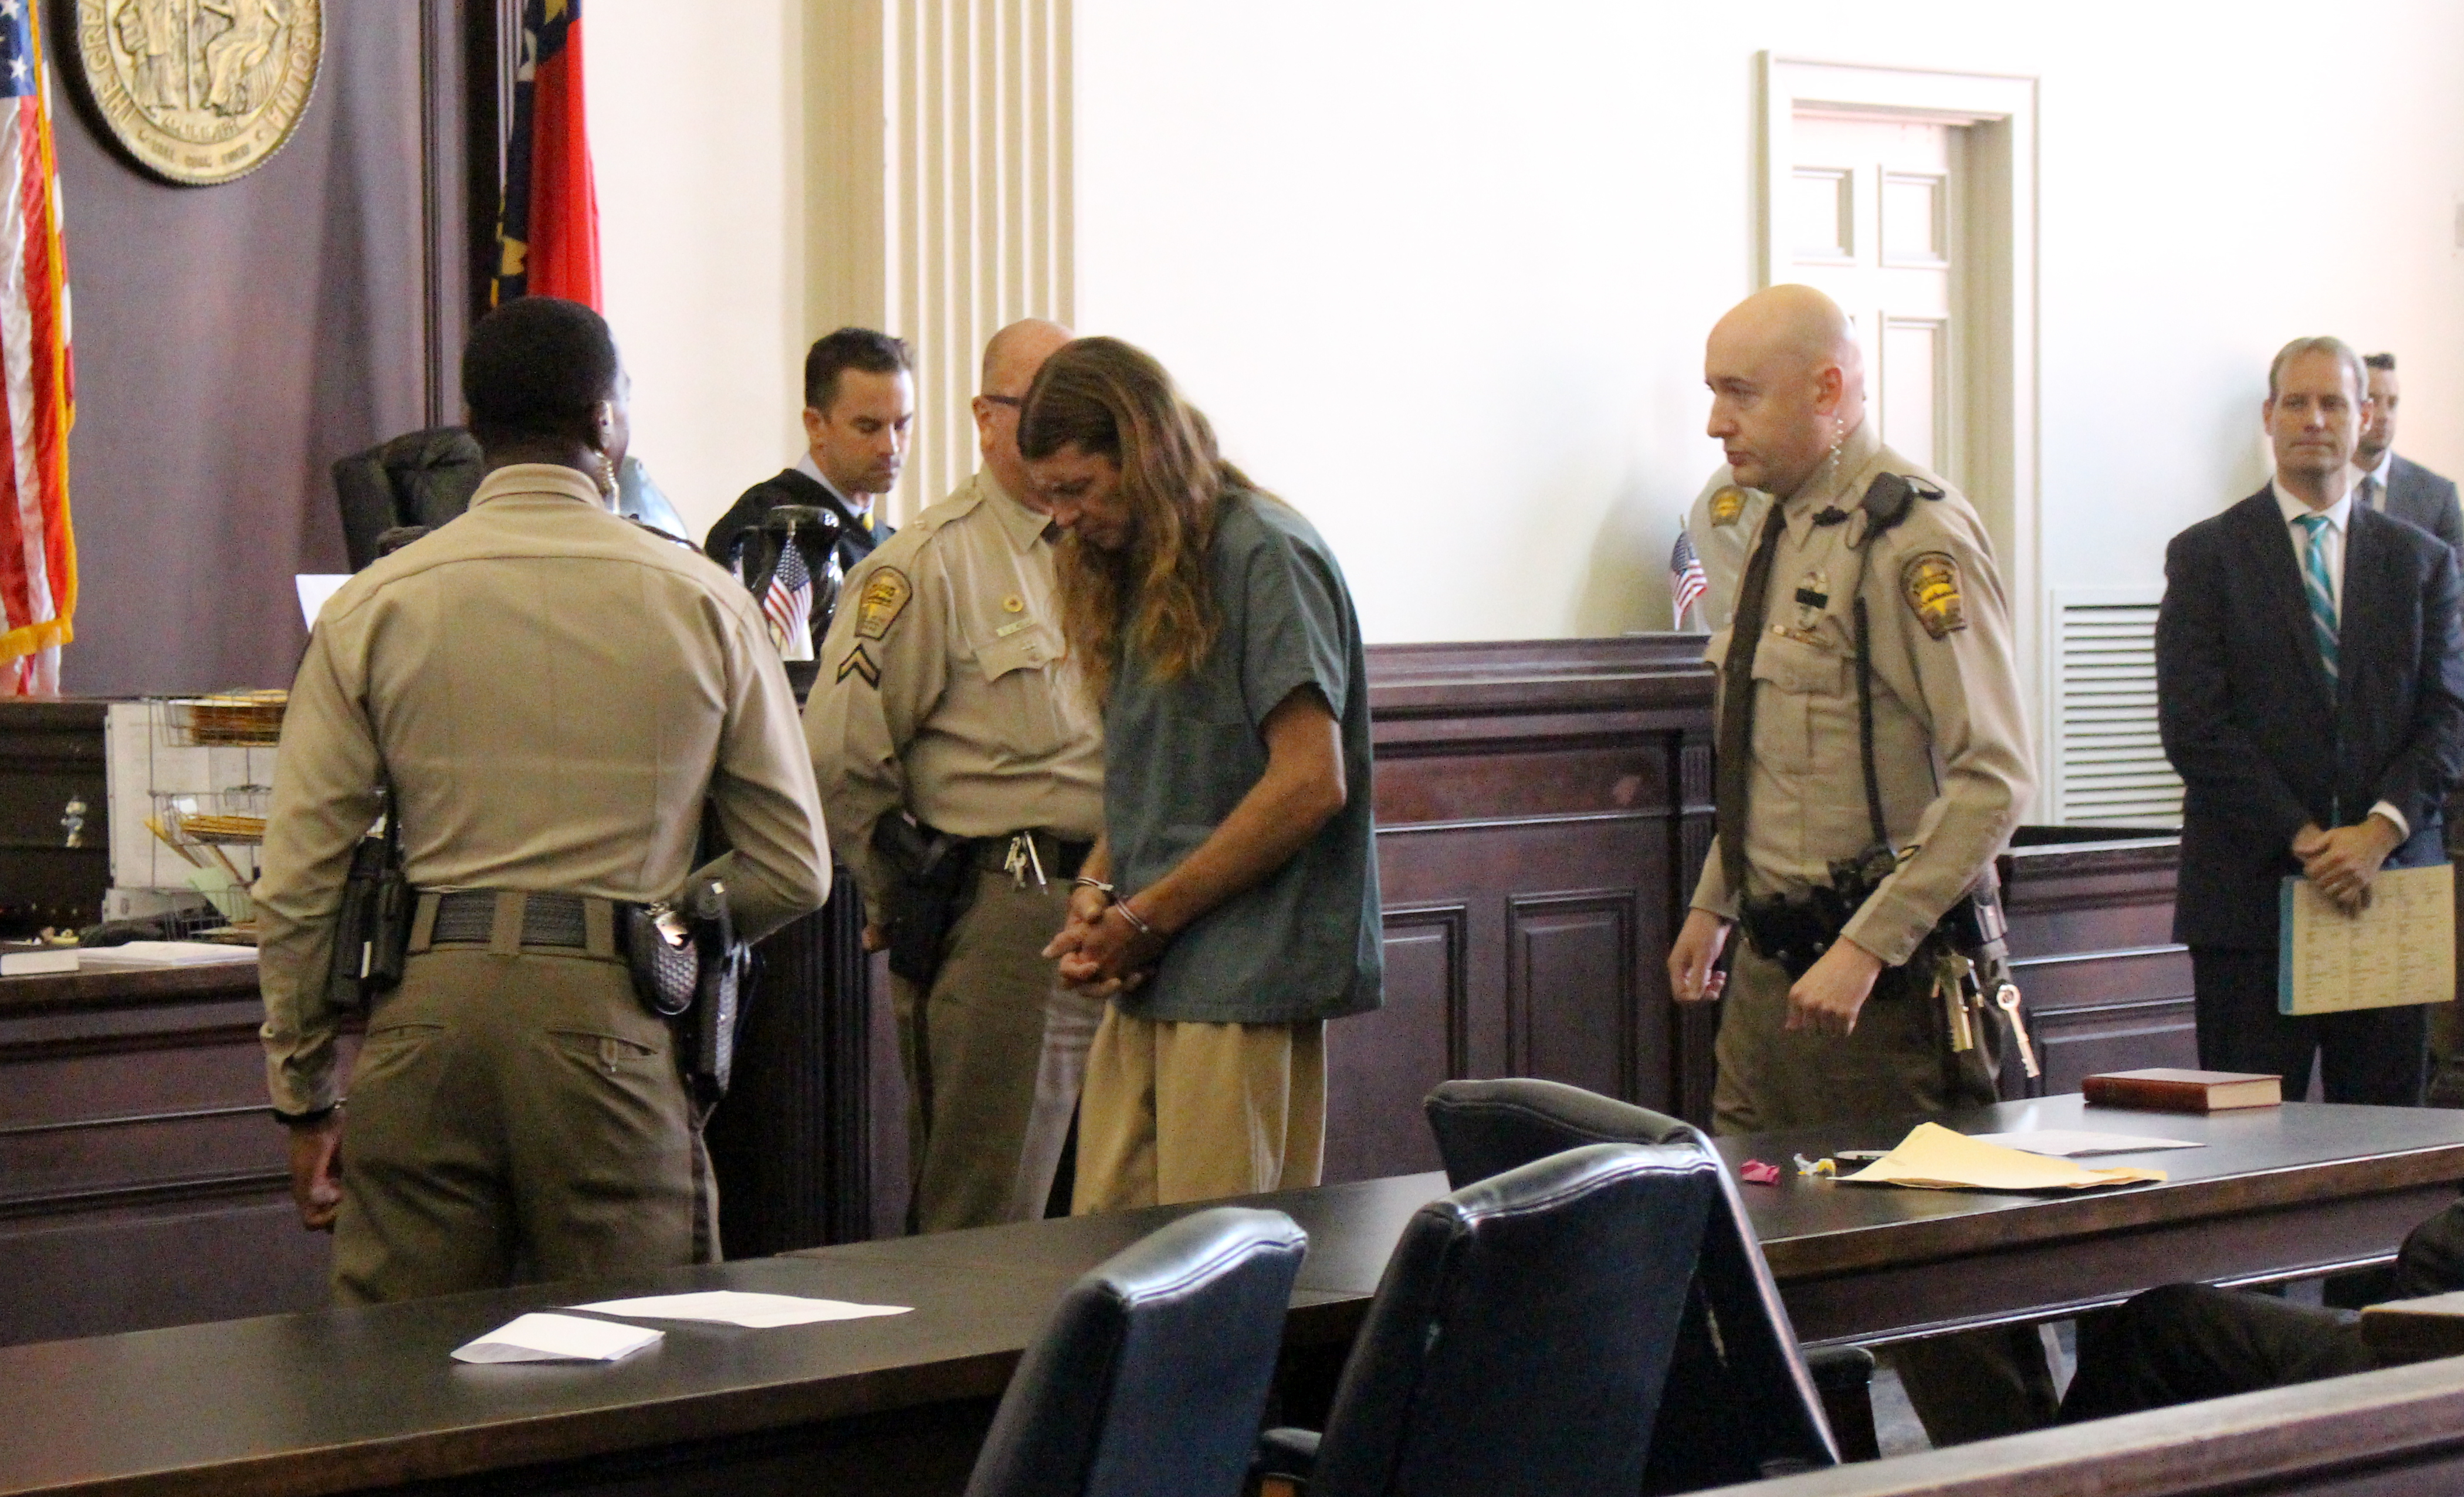 Douglas Edwards (center) appeared in district court Friday morning to face charges in a kidnapping and sexual assault of girl. (Photo by Christina Haley)